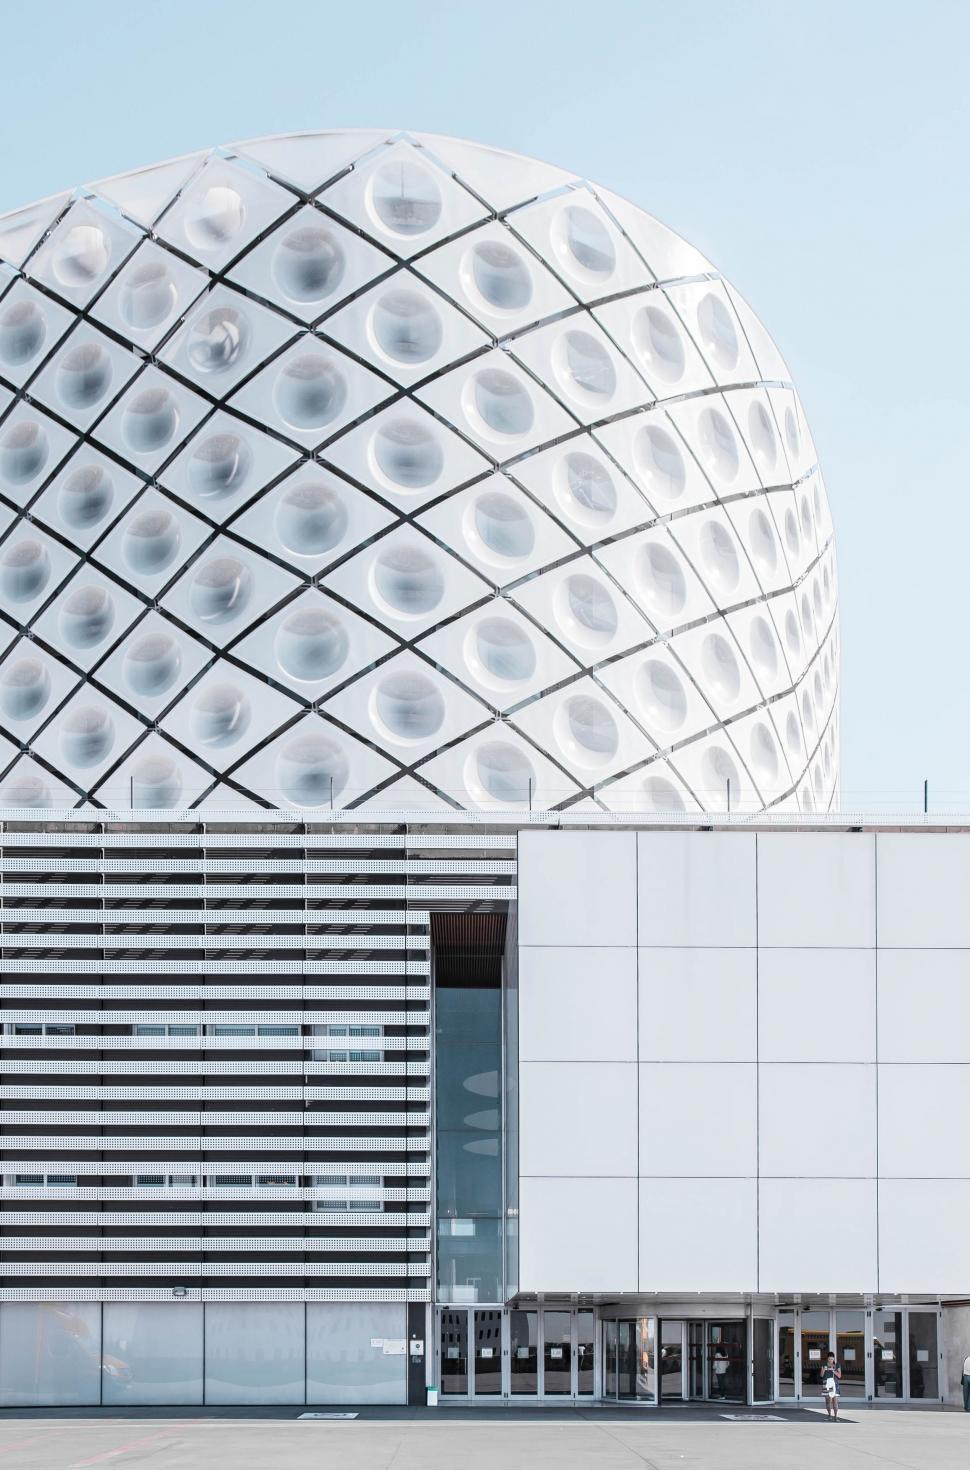 Download Free Stock Photo of building architecture modern business city structure sky solar dish protective covering